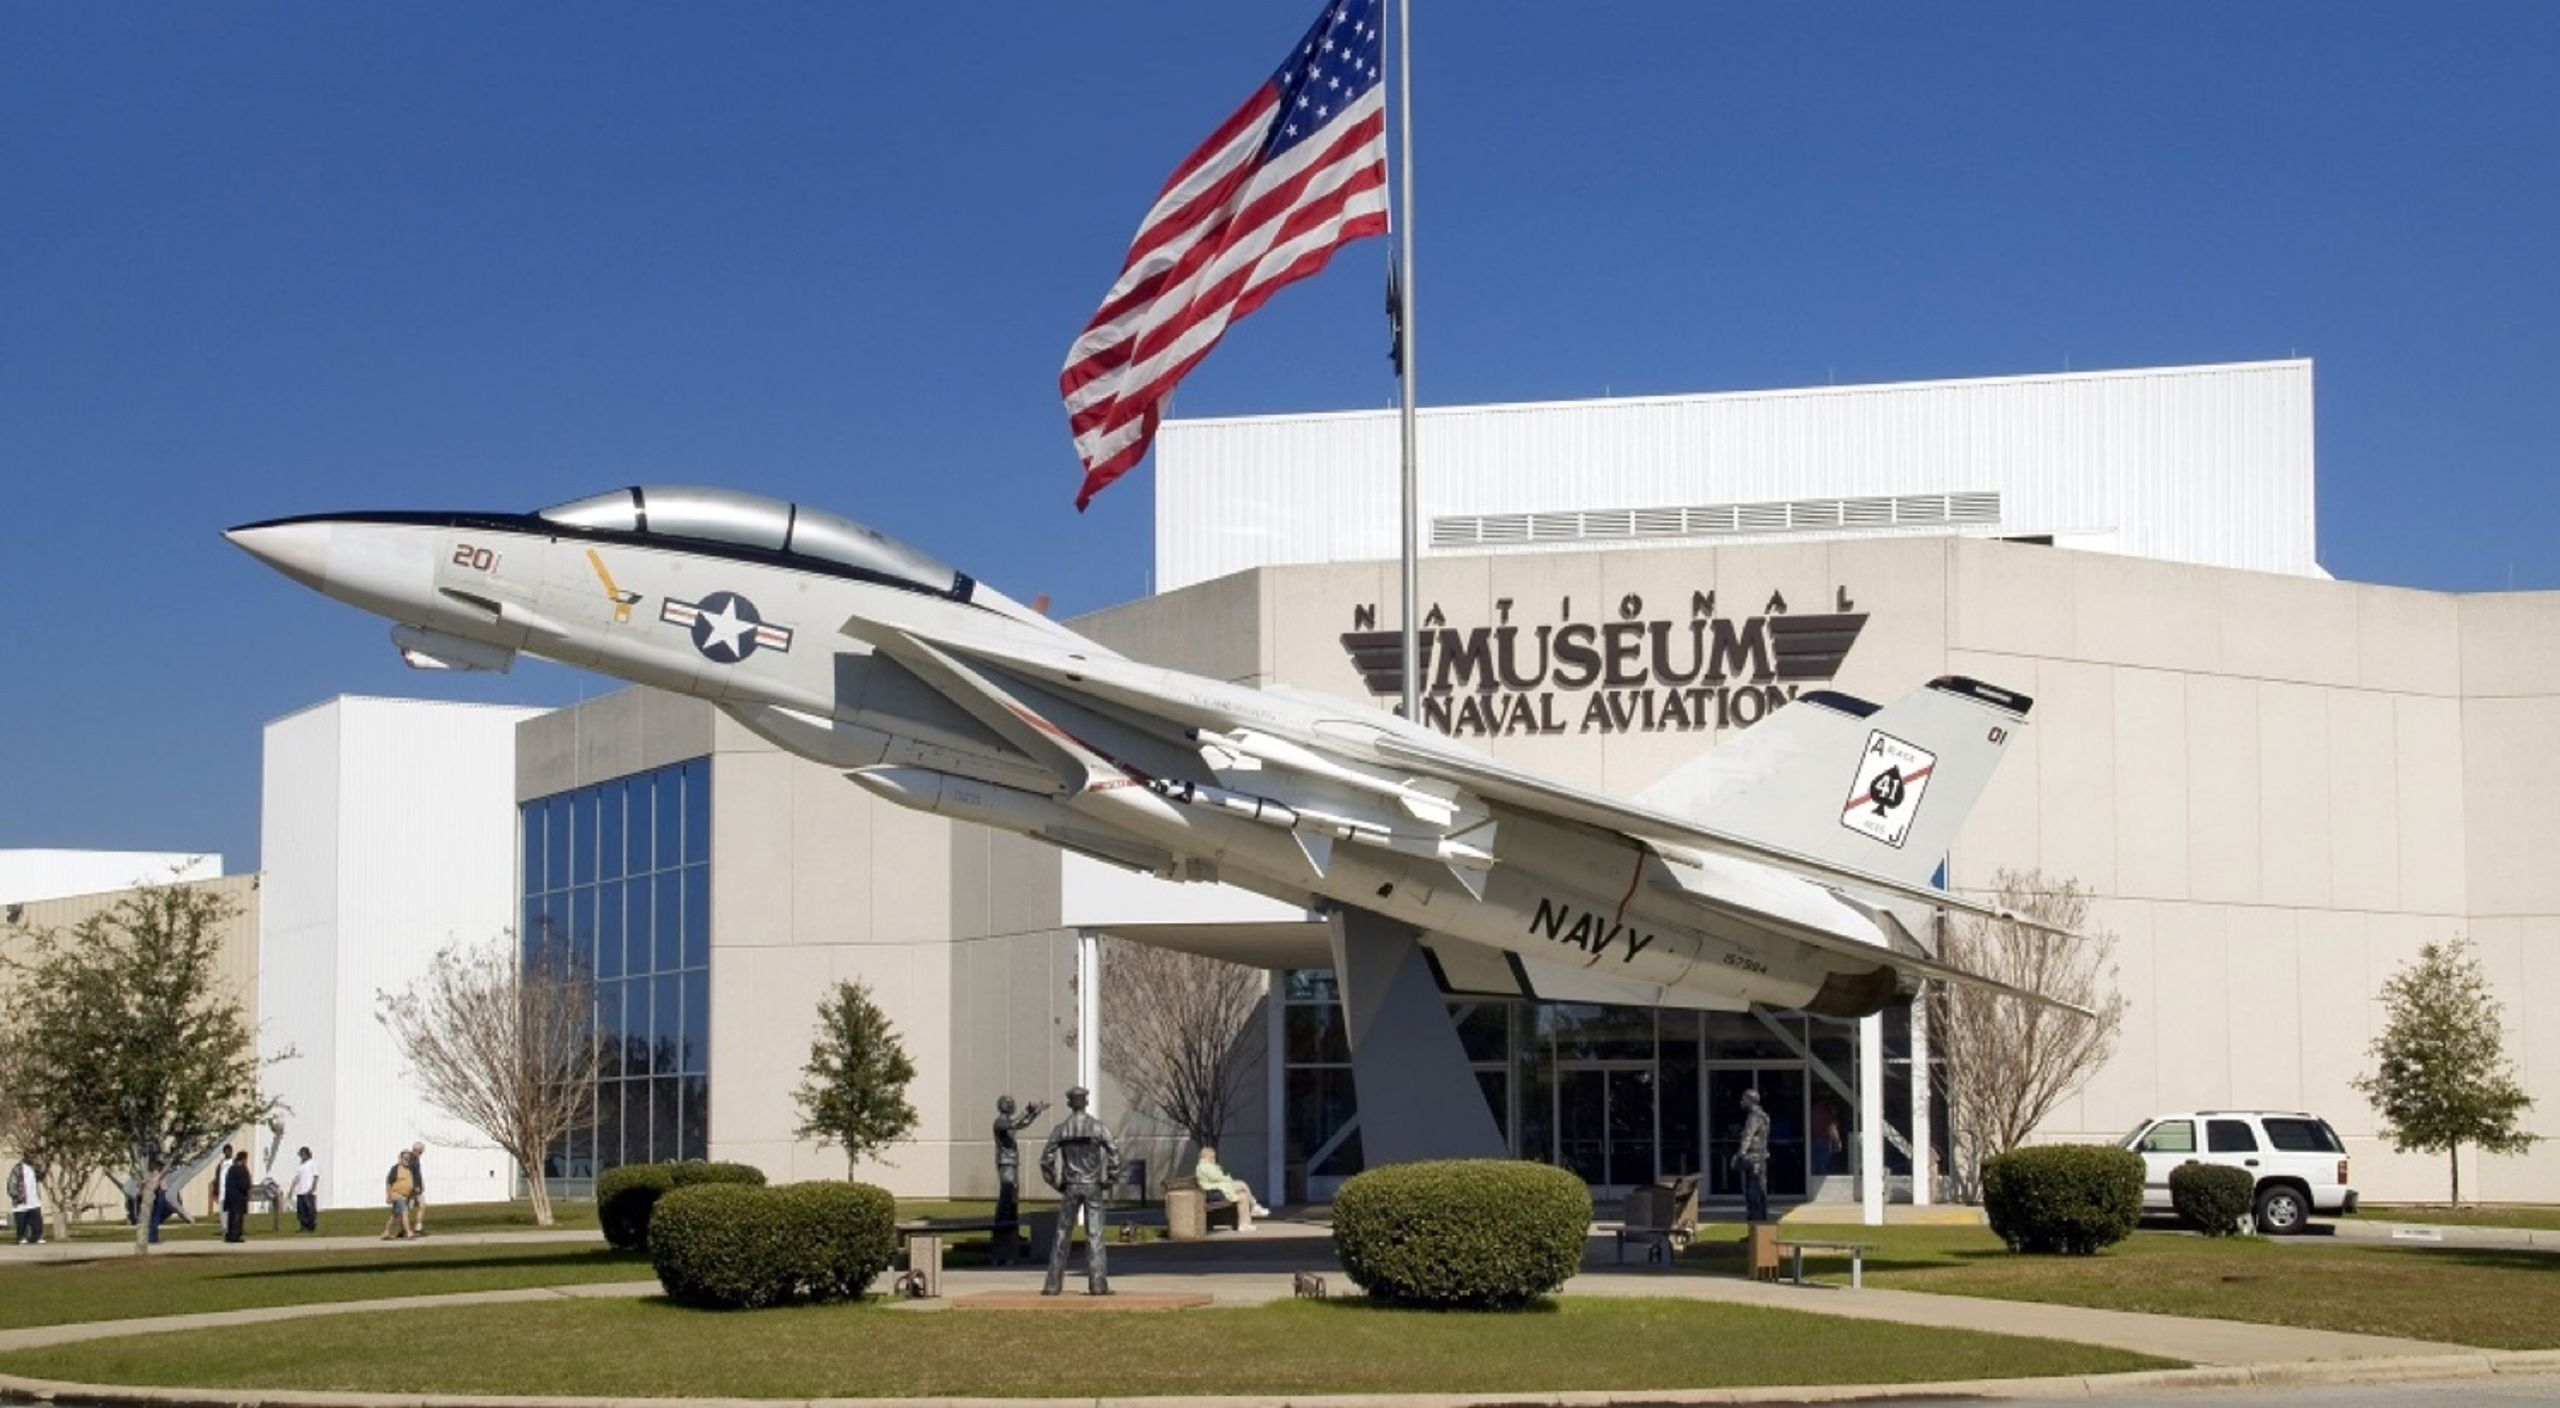 Home of the naval aviation museum and national flight academy